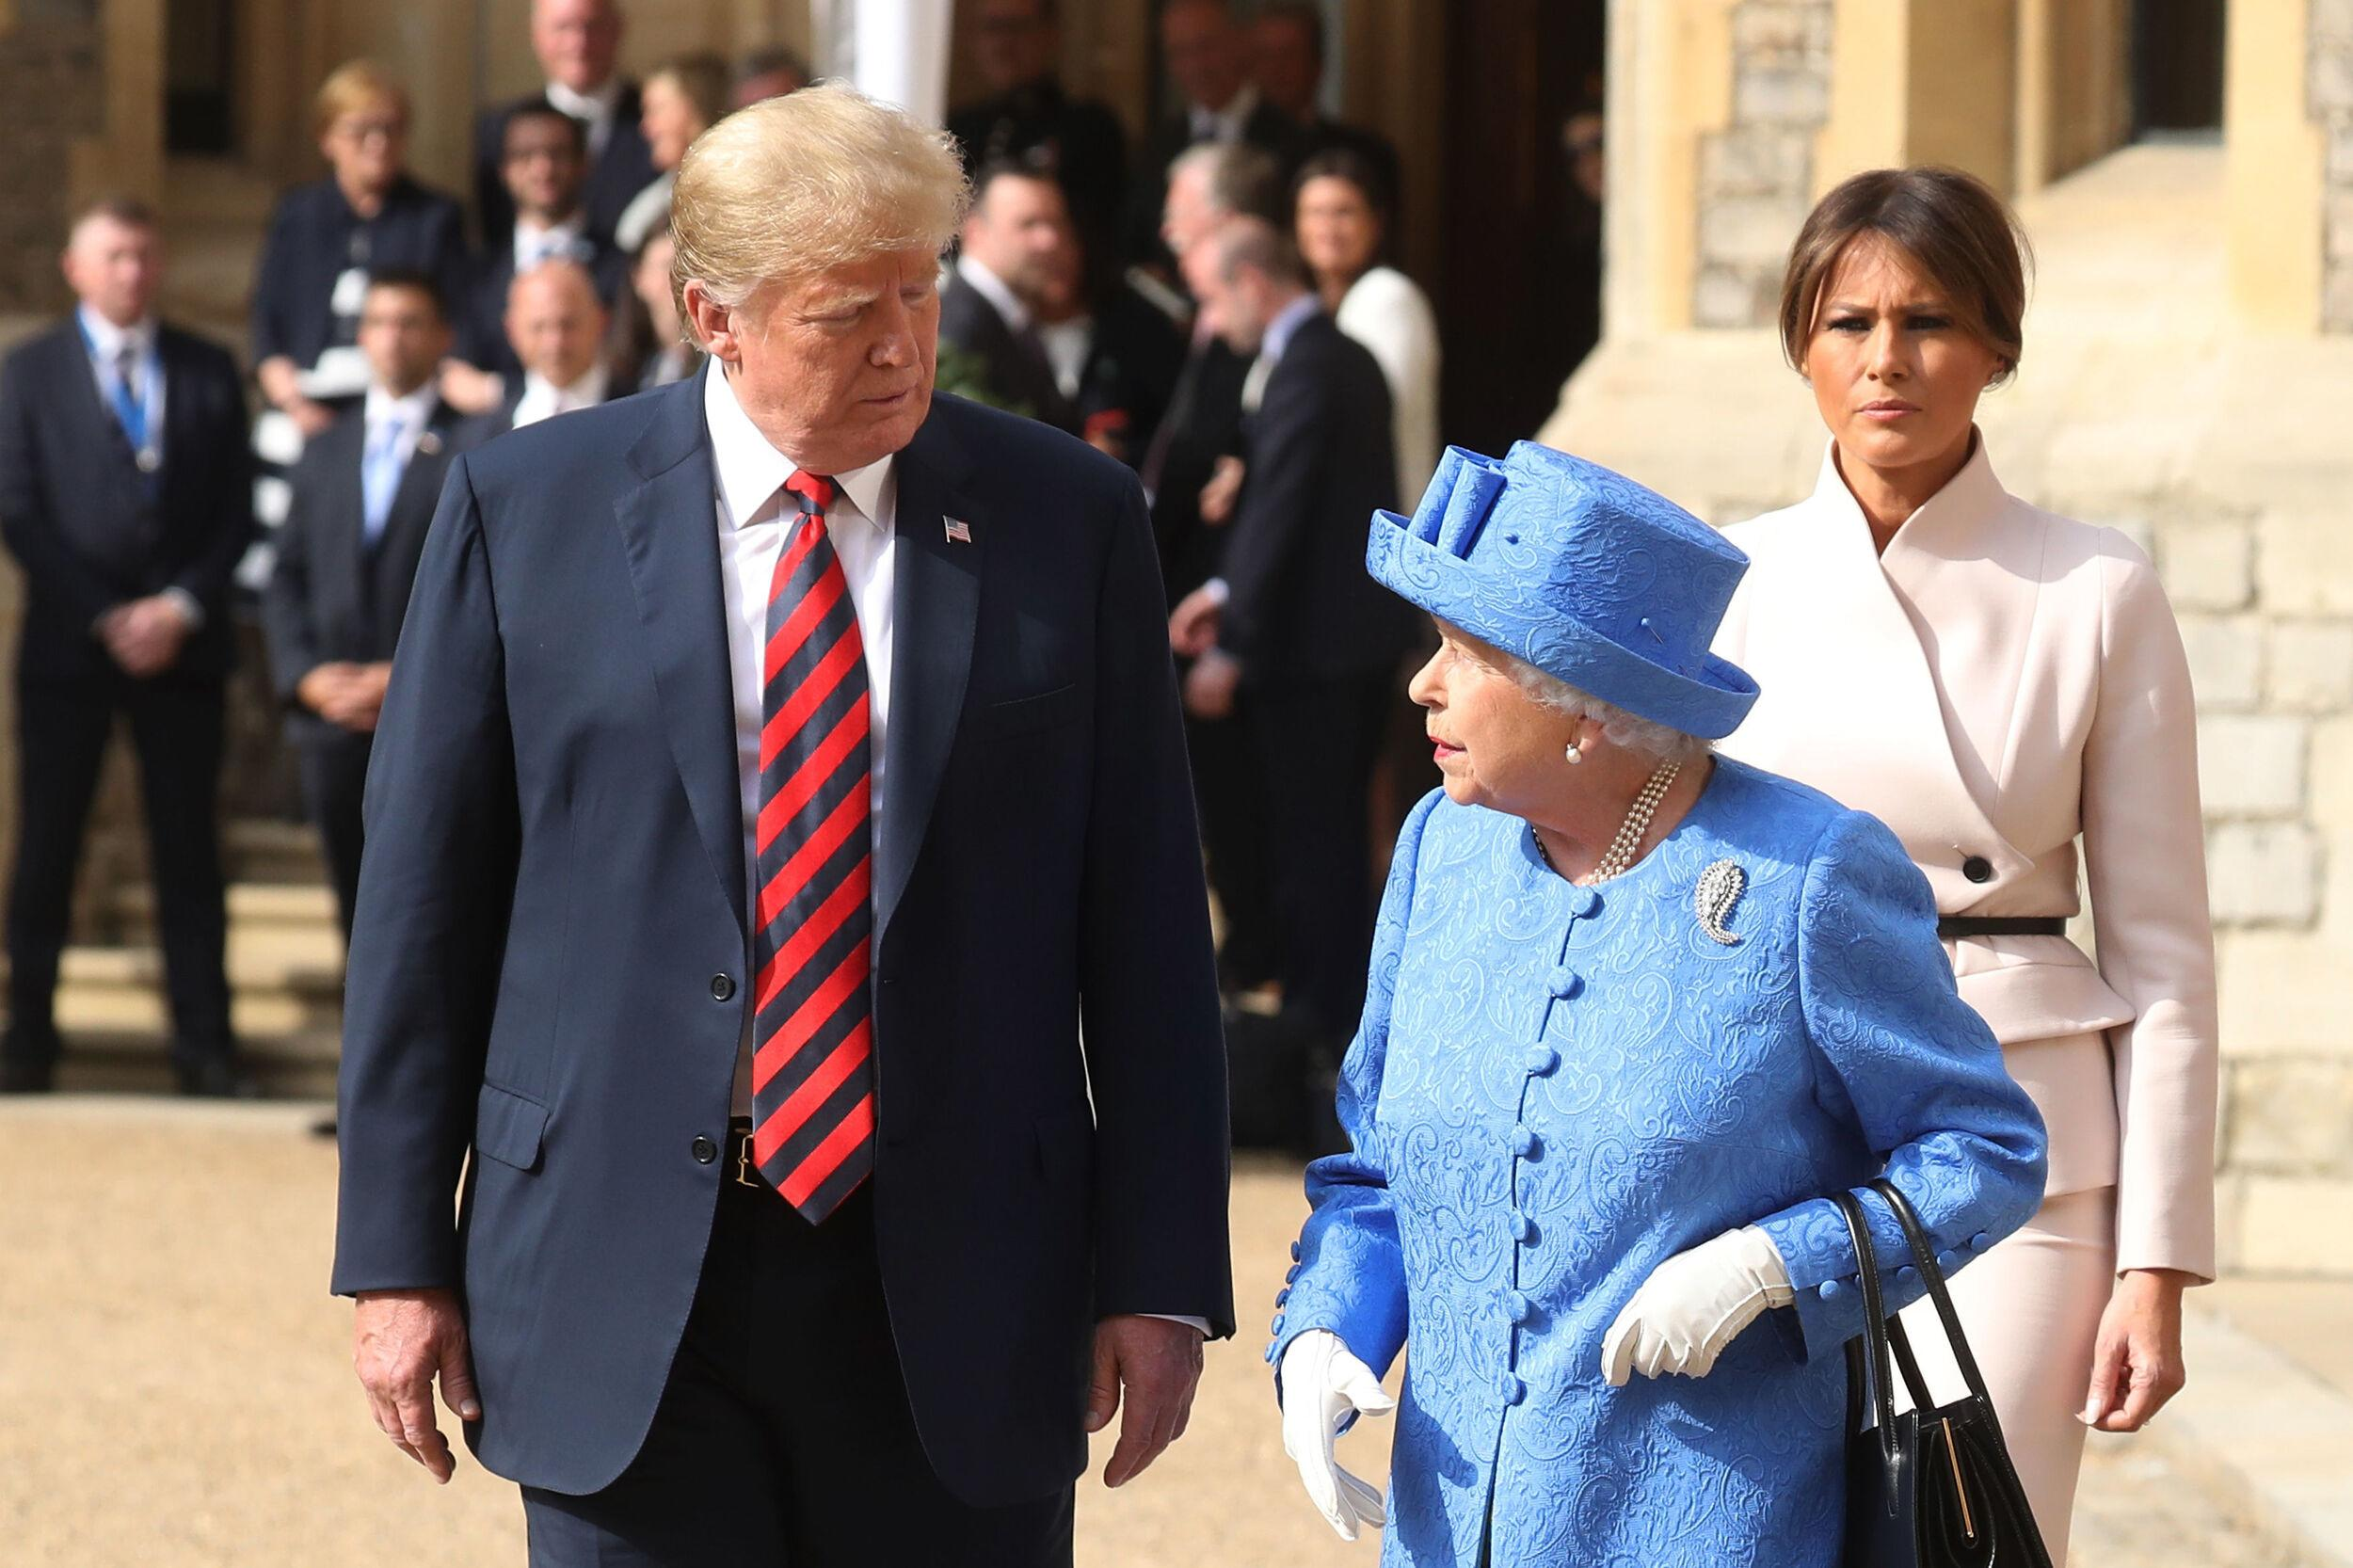 File photo dated 13/7/18 of Queen Elizabeth II, US President Donald Trump and first lady Melania Trump walk in the Quadrangle during a ceremonial welcome at Windsor Castle, Windsor. Policing Trump's four-day visit to the UK cost more than �14.2 million, according to figures obtained by the Press Association.